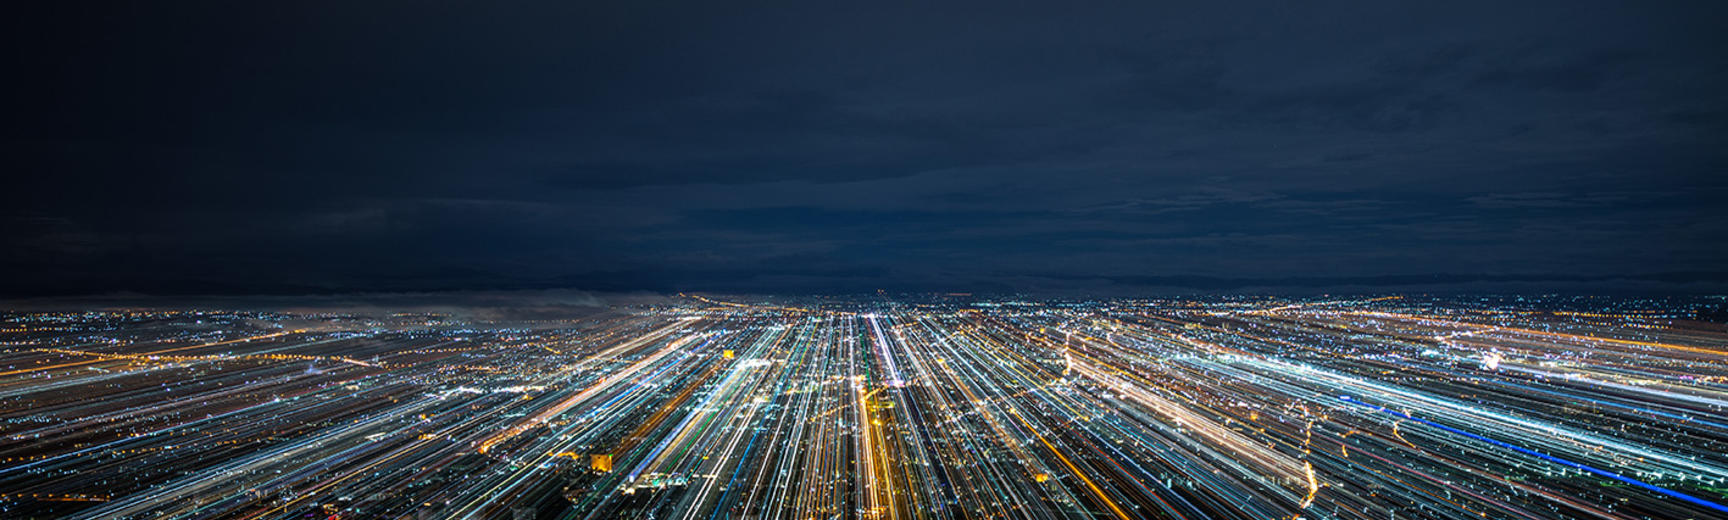 A city at night with blurred light trails